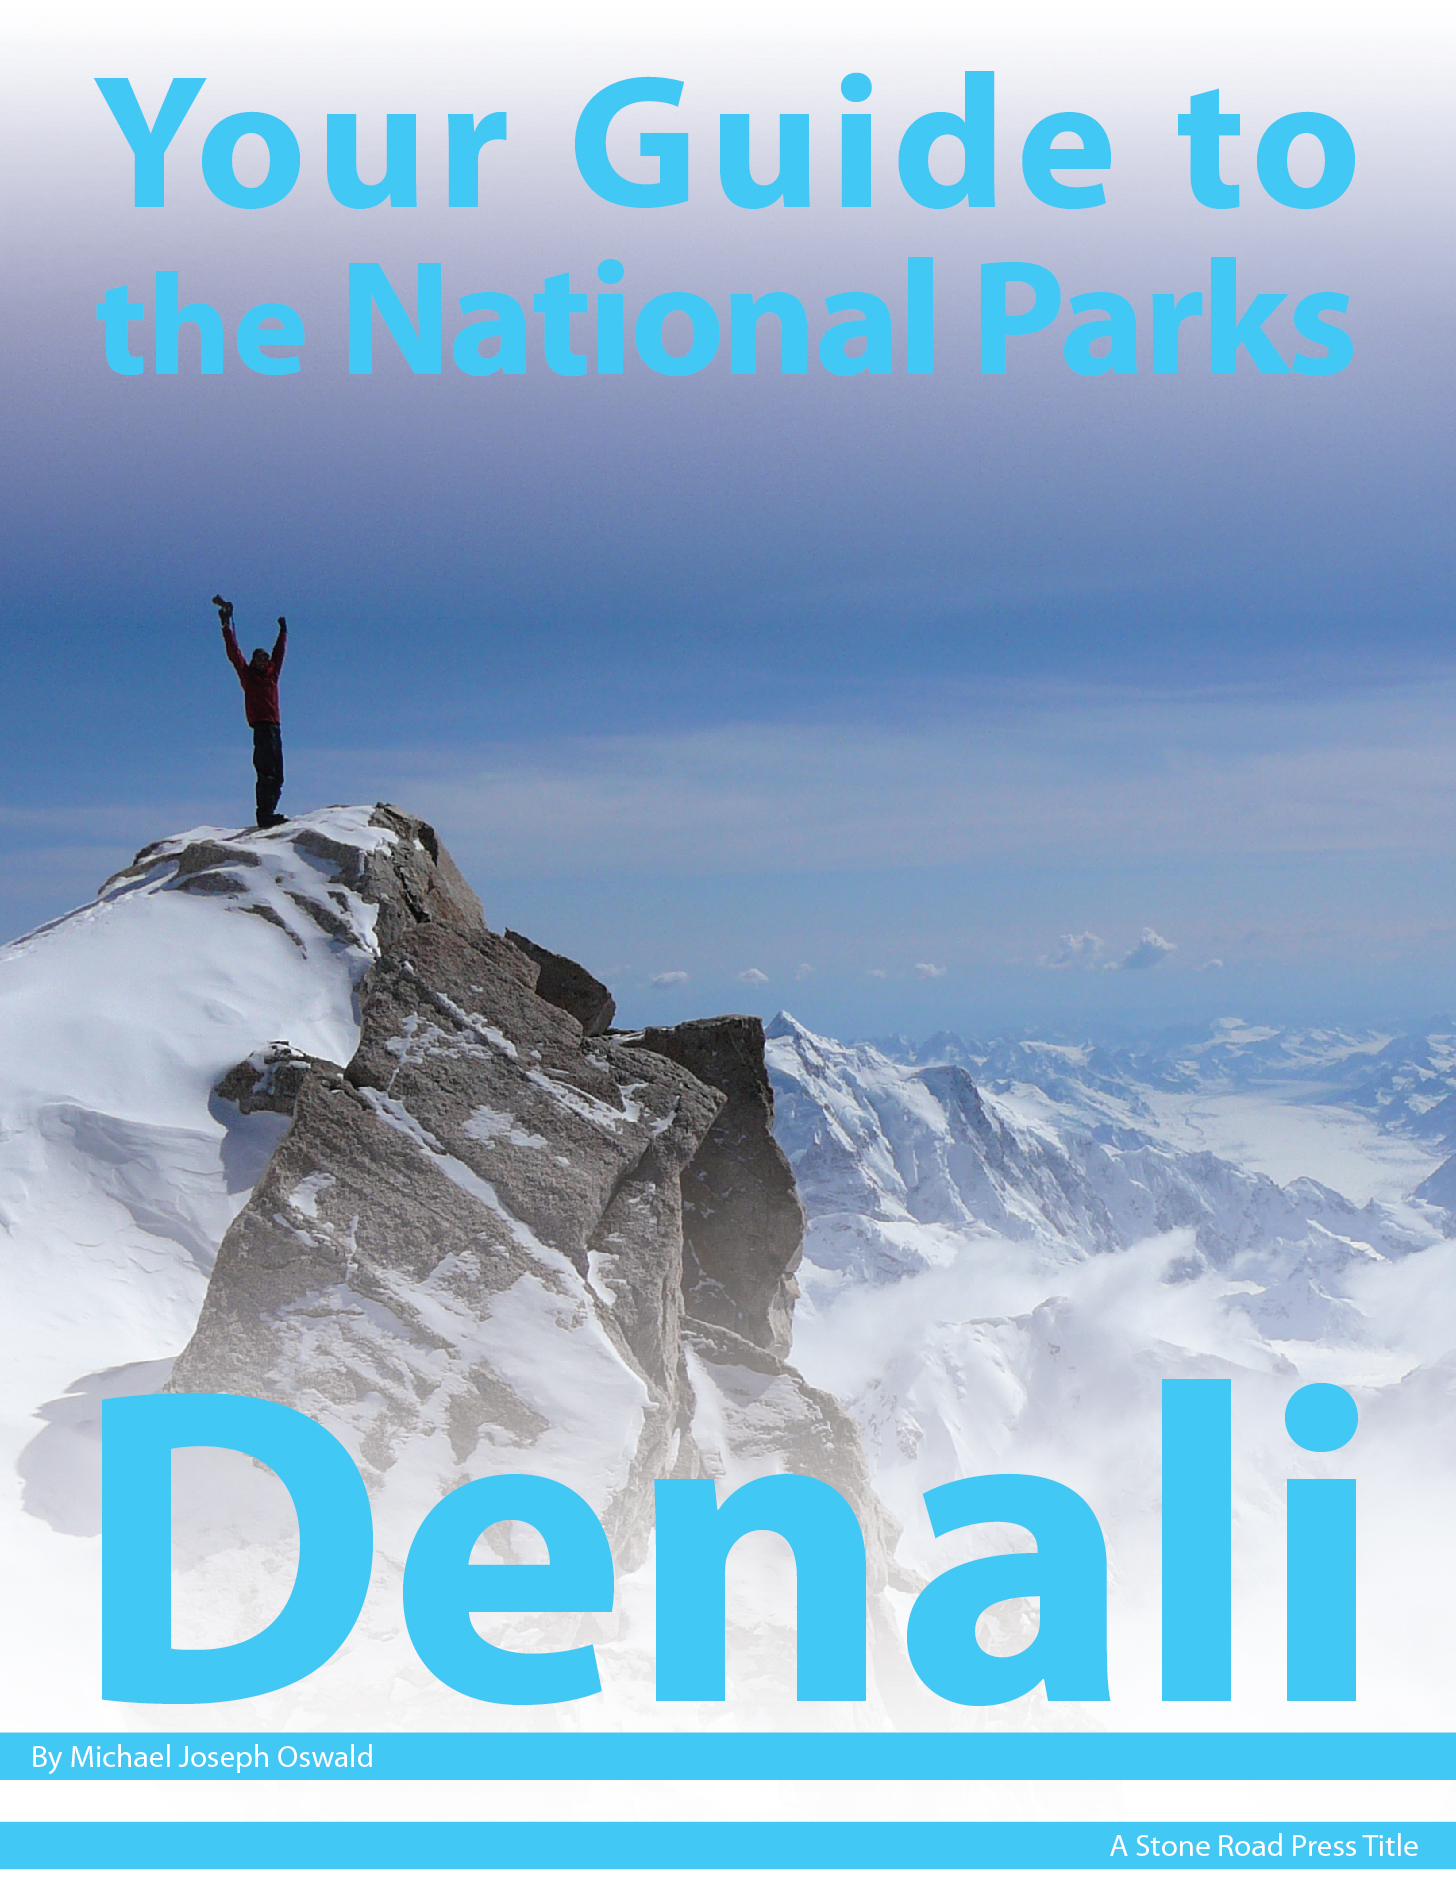 Your Guide to Denali National Park